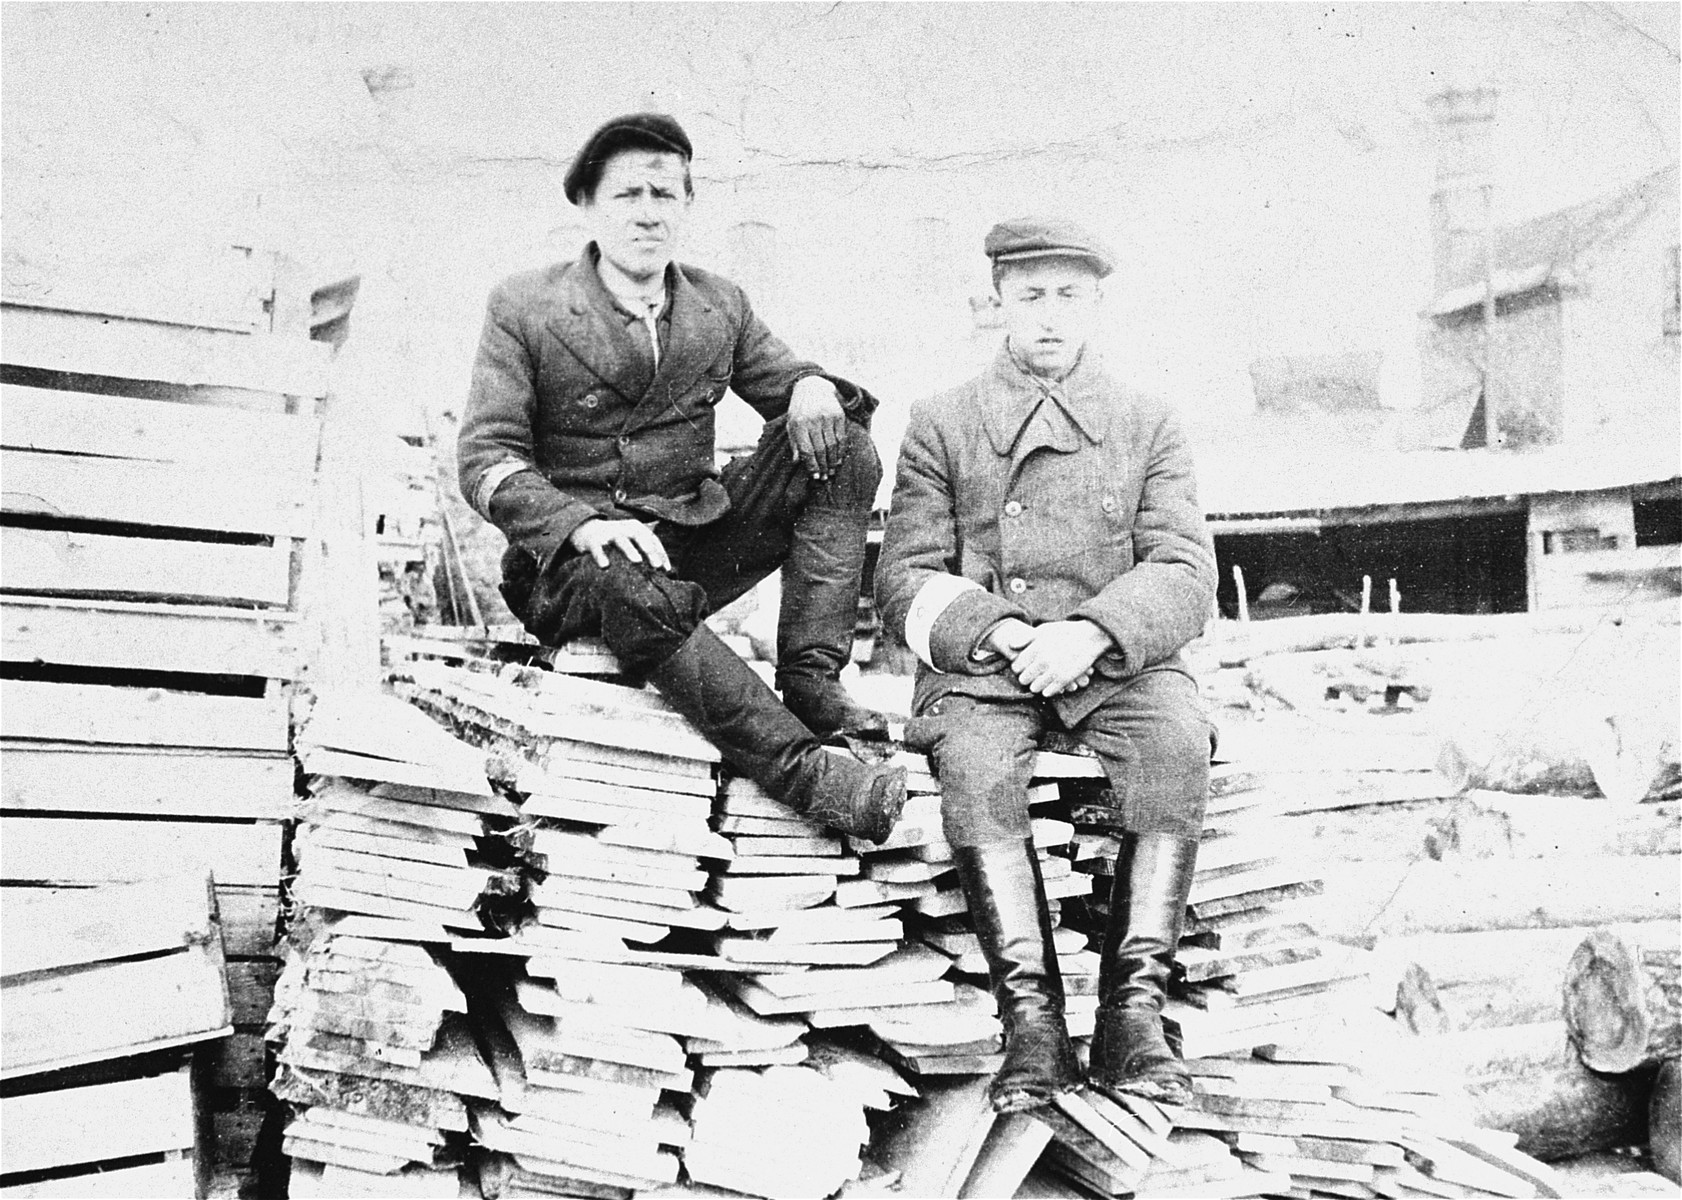 Isaac Ejber and Jacob Rajs sit on a wood pile at a sawmill near the Wlodawa ghetto.  Both were resistance fighters who were killed by the Germans in Adampol.